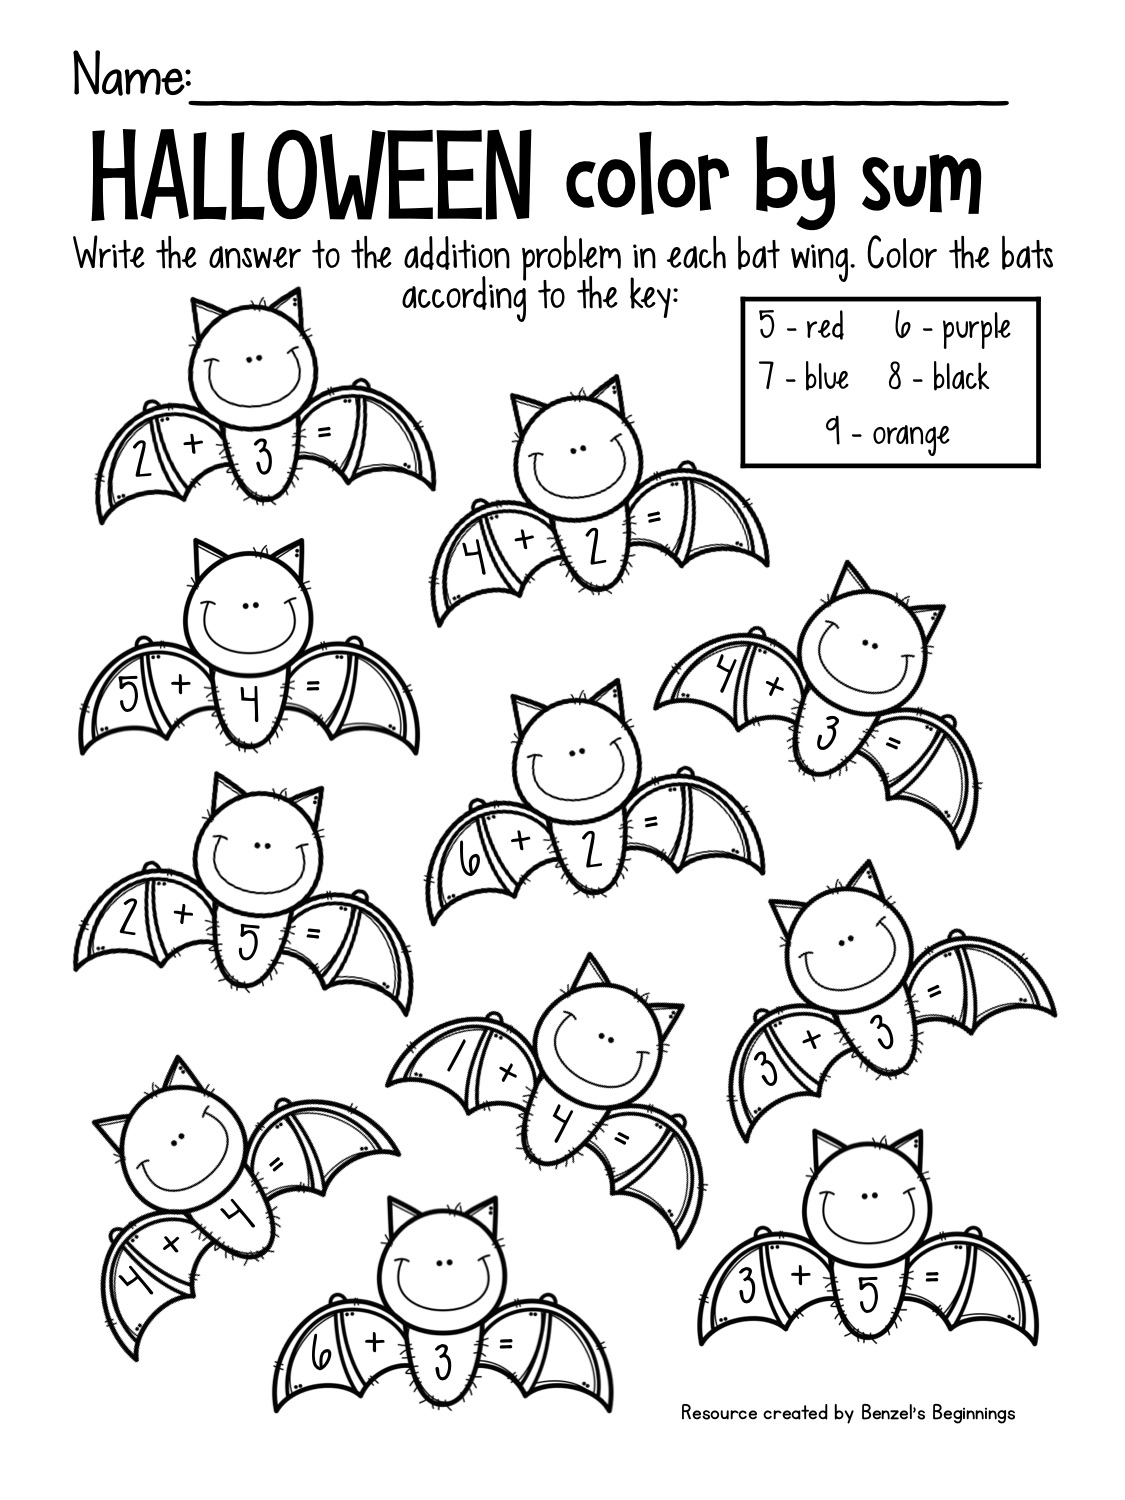 Halloween Homework Pass Printable That Are Lucrative